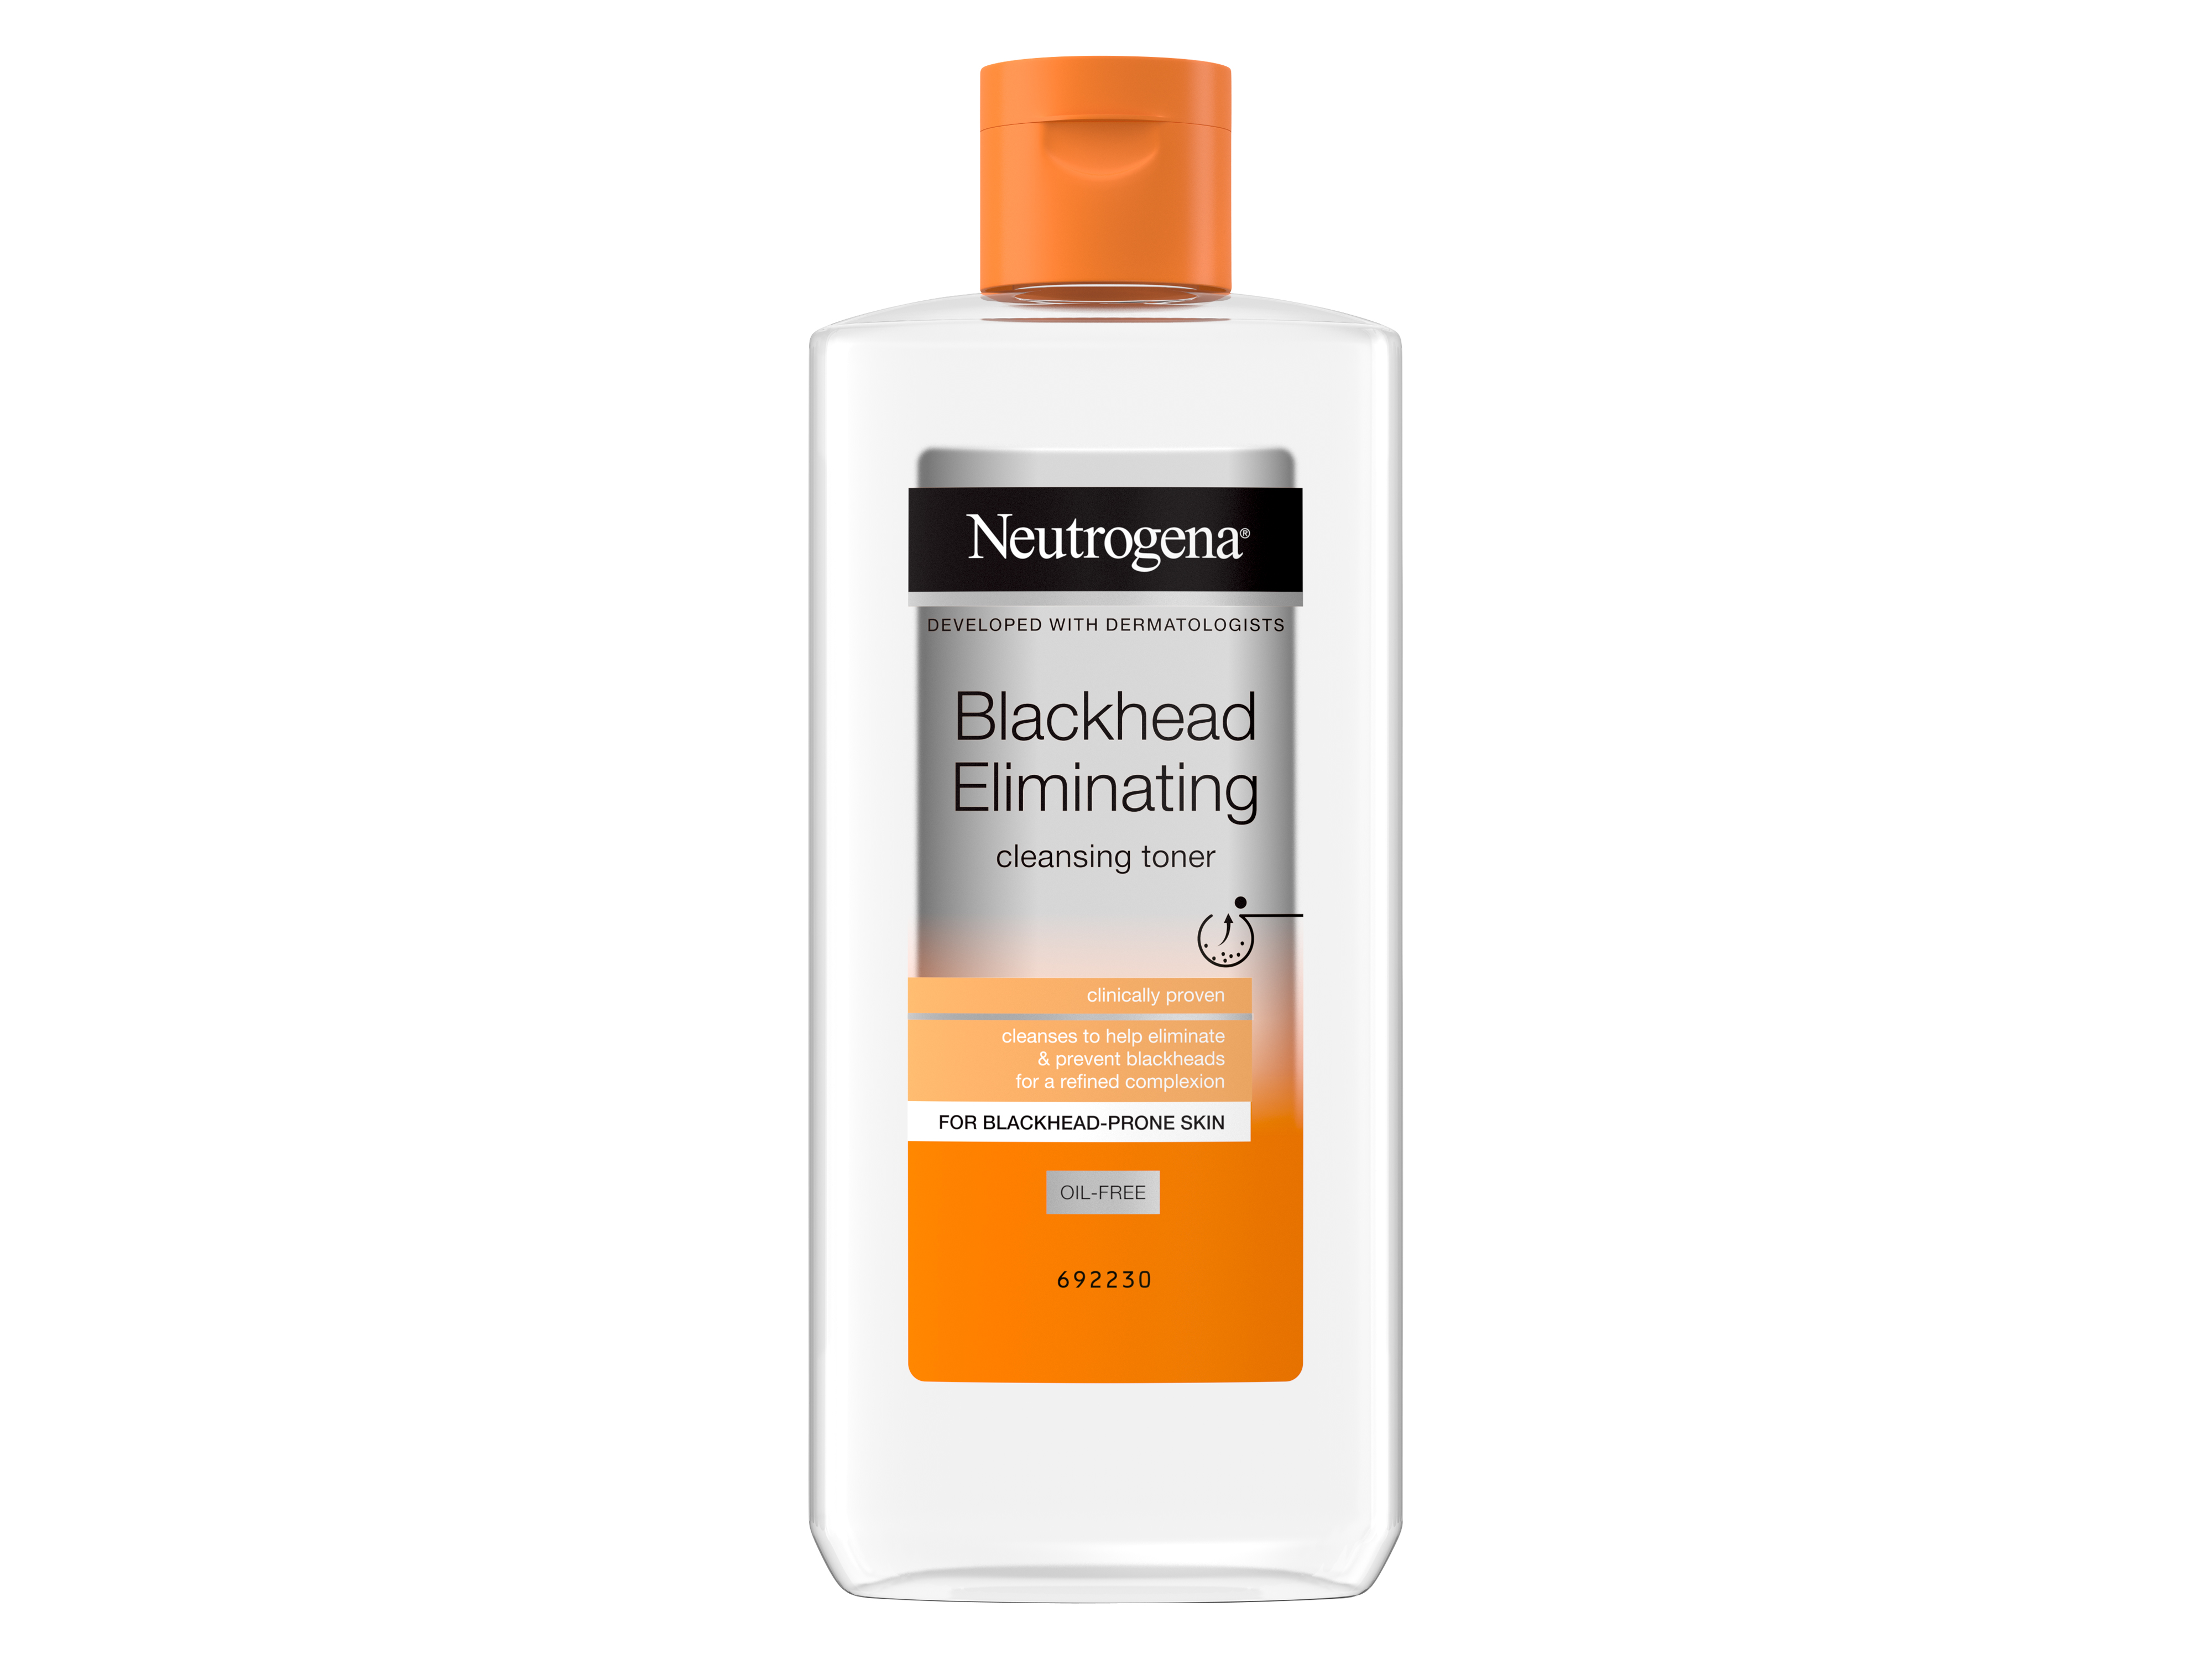 Neutrogena Blackhead Eliminating Cleansing Toner, 150 ml